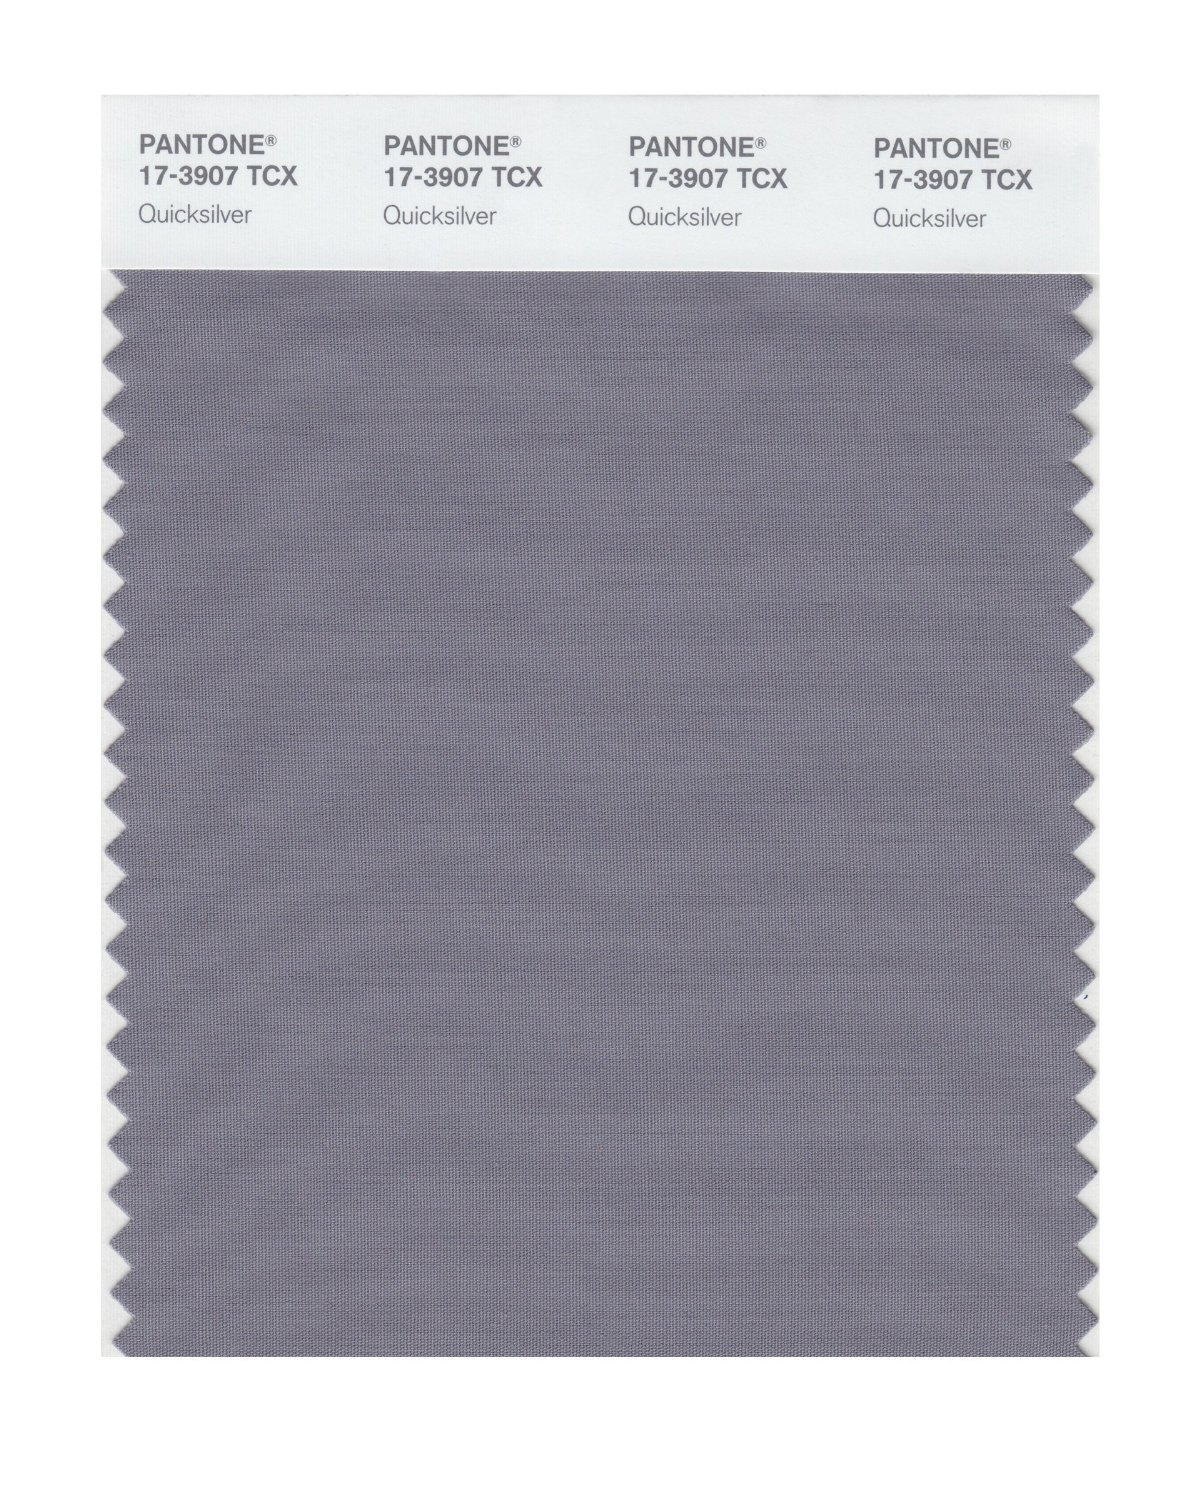 Pantone Smart Swatch 17-3907 Quicksilver